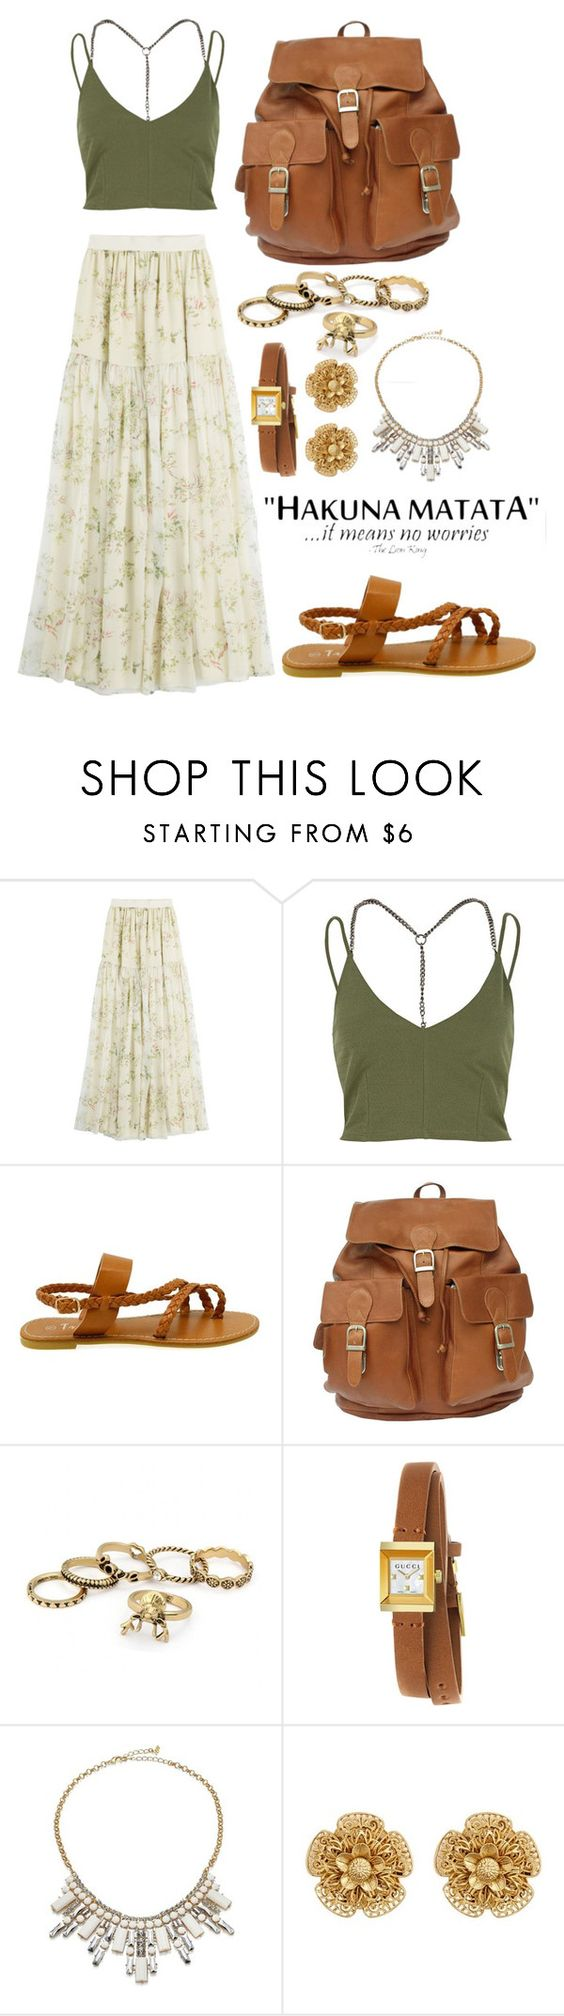 """""""Hakuna Matata"""" by tychehecateartemishera ❤ liked on Polyvore featuring Giambattista Valli, River Island, Gucci, ABS by Allen Schwartz and Miriam Haskell"""